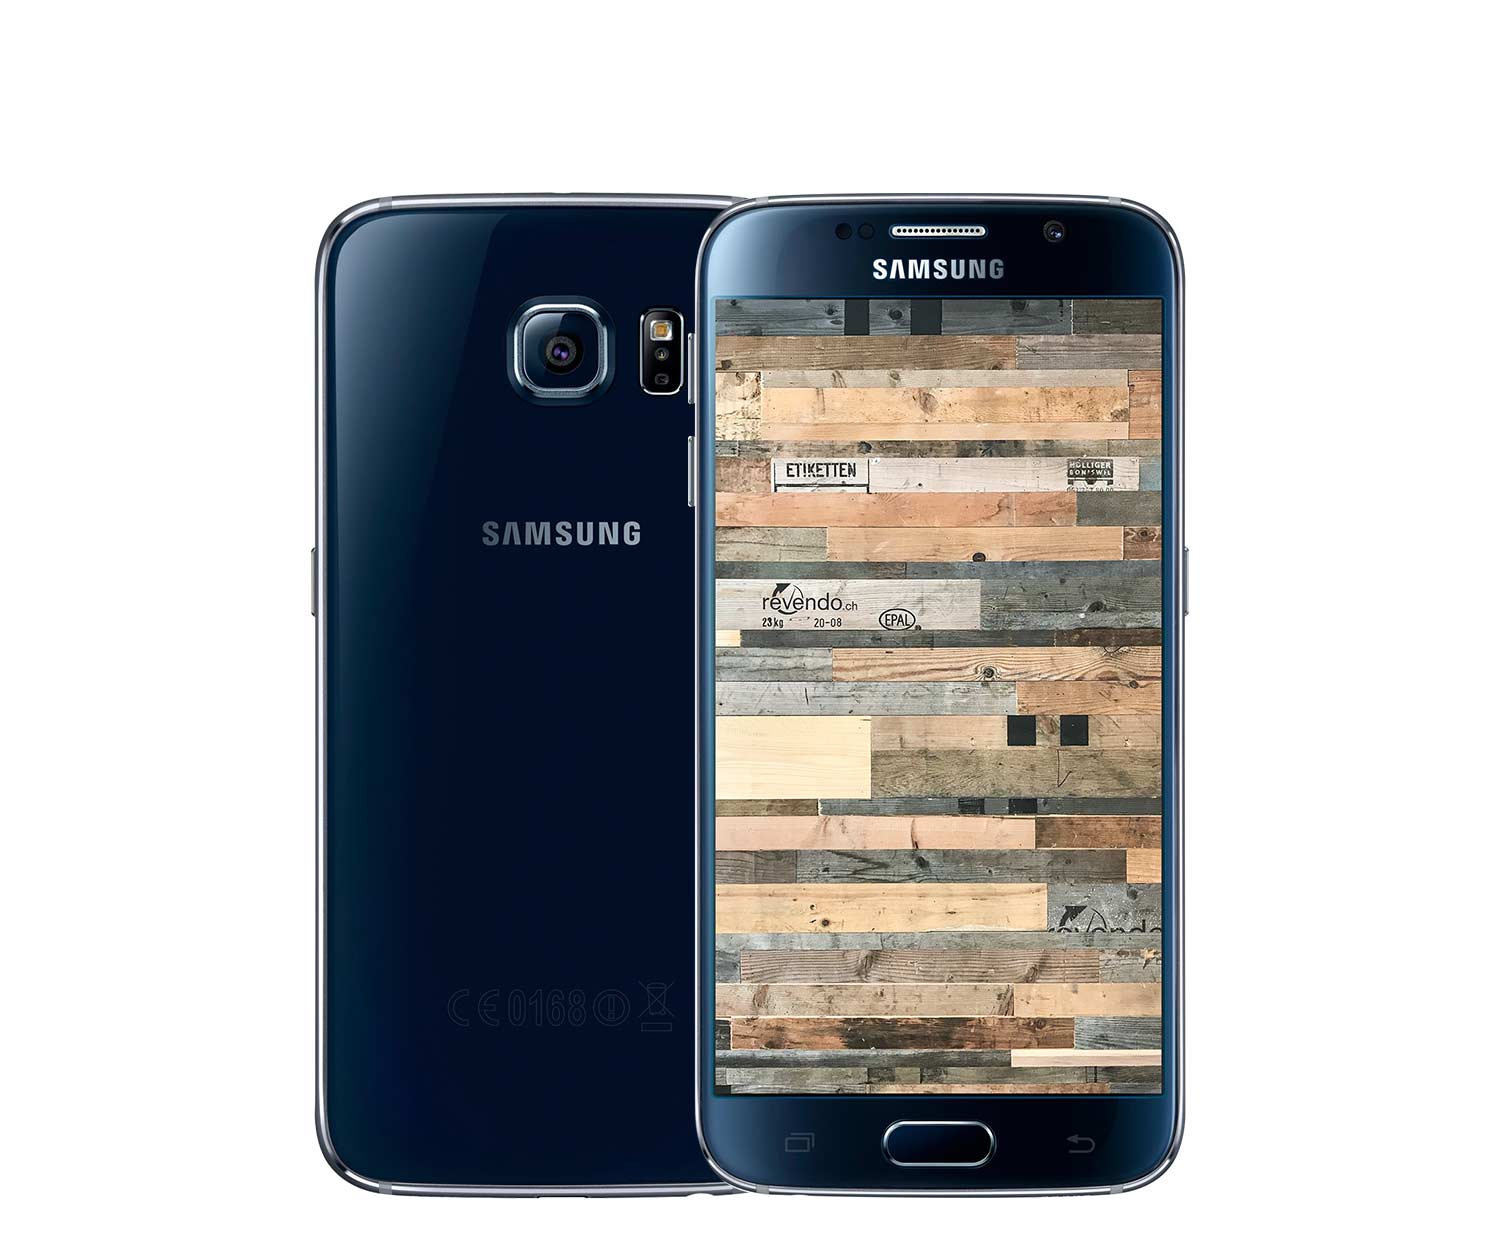 samsung galaxy s6 64 gb black sapphire. Black Bedroom Furniture Sets. Home Design Ideas